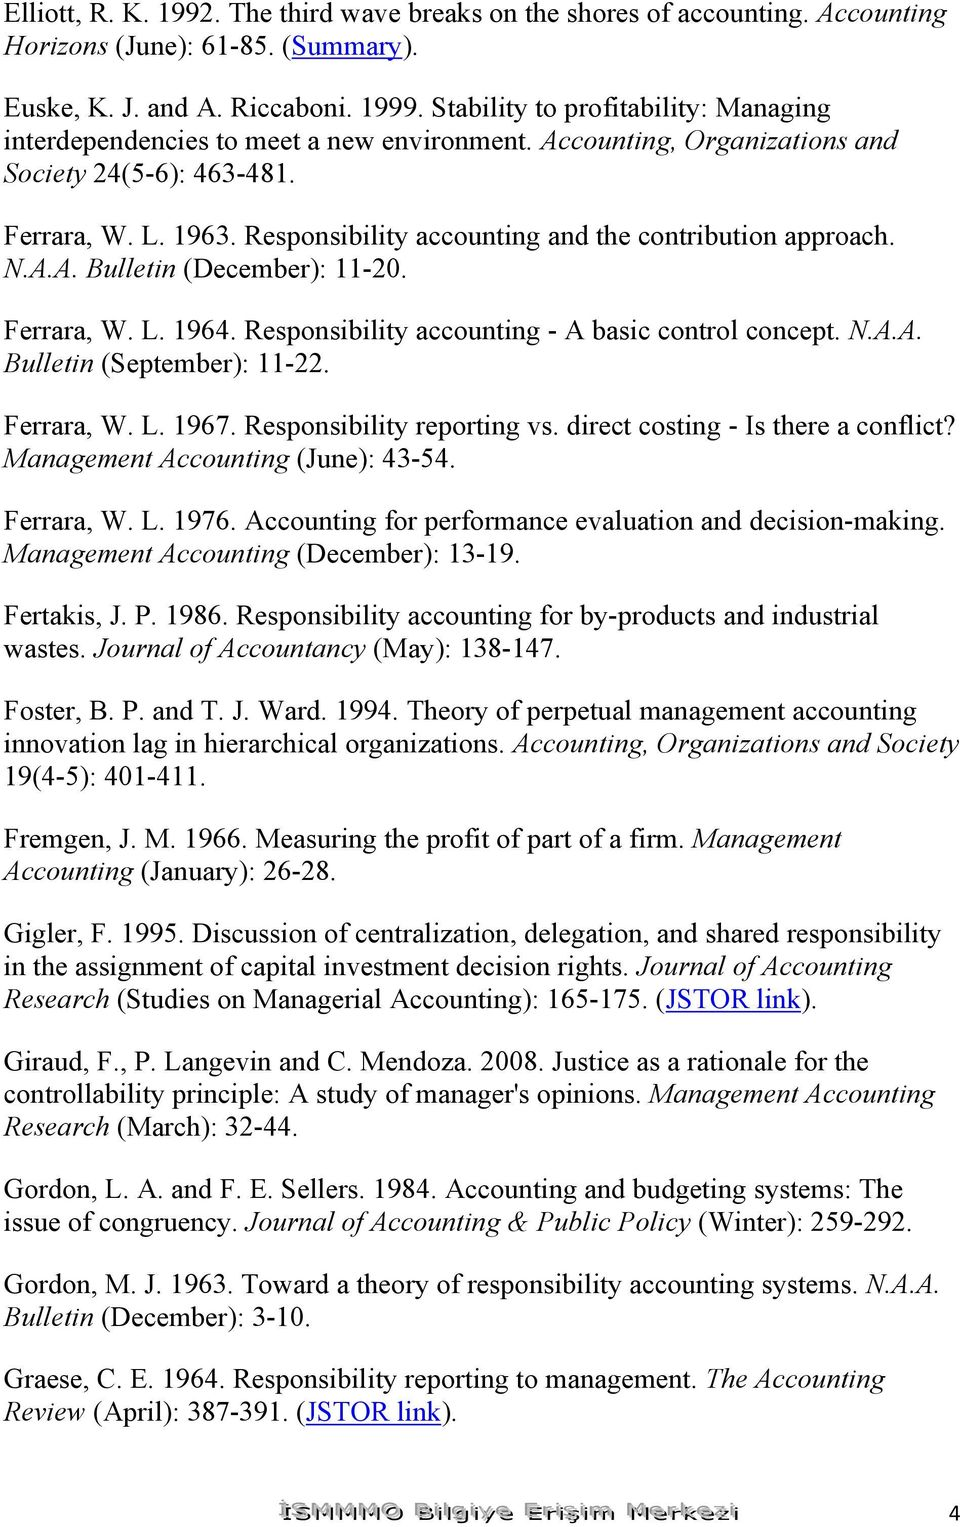 Responsibility accounting and the contribution approach. N.A.A. Bulletin (December): 11-20. Ferrara, W. L. 1964. Responsibility accounting - A basic control concept. N.A.A. Bulletin (September): 11-22.